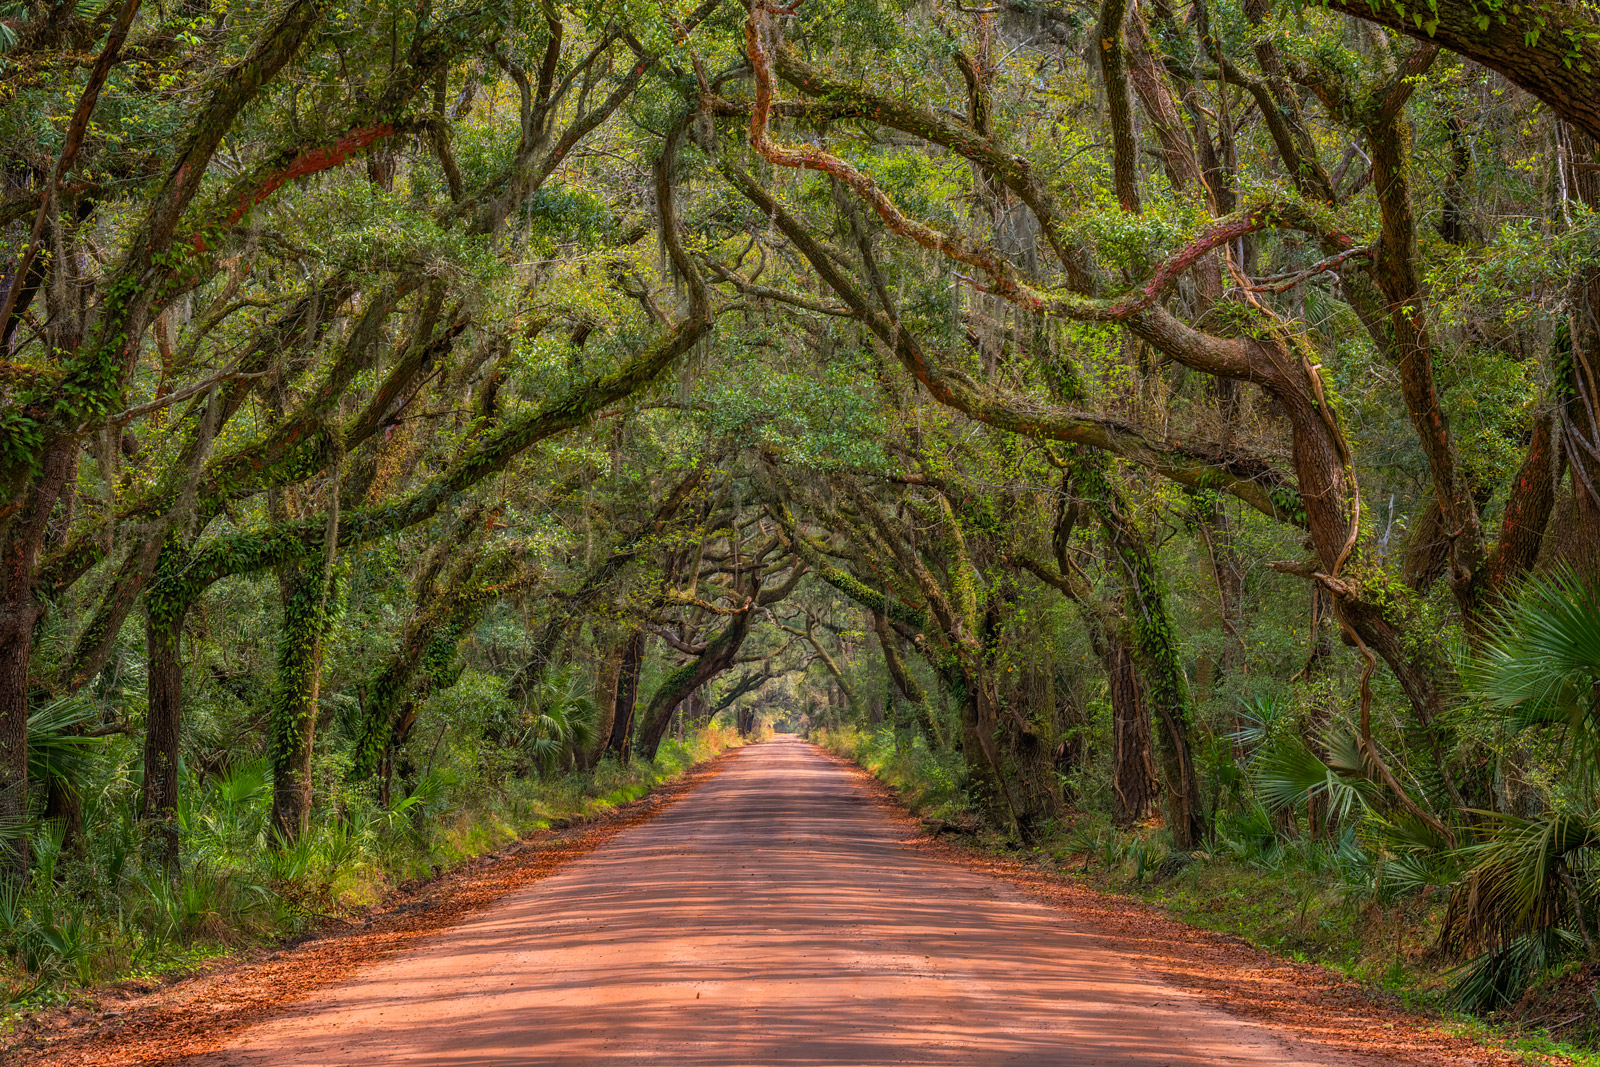 A Limited Edition, Fine Art photograph of an oak tree tunnel on Botany Bay Road in South Carolina. Available as a Fine Art Print...